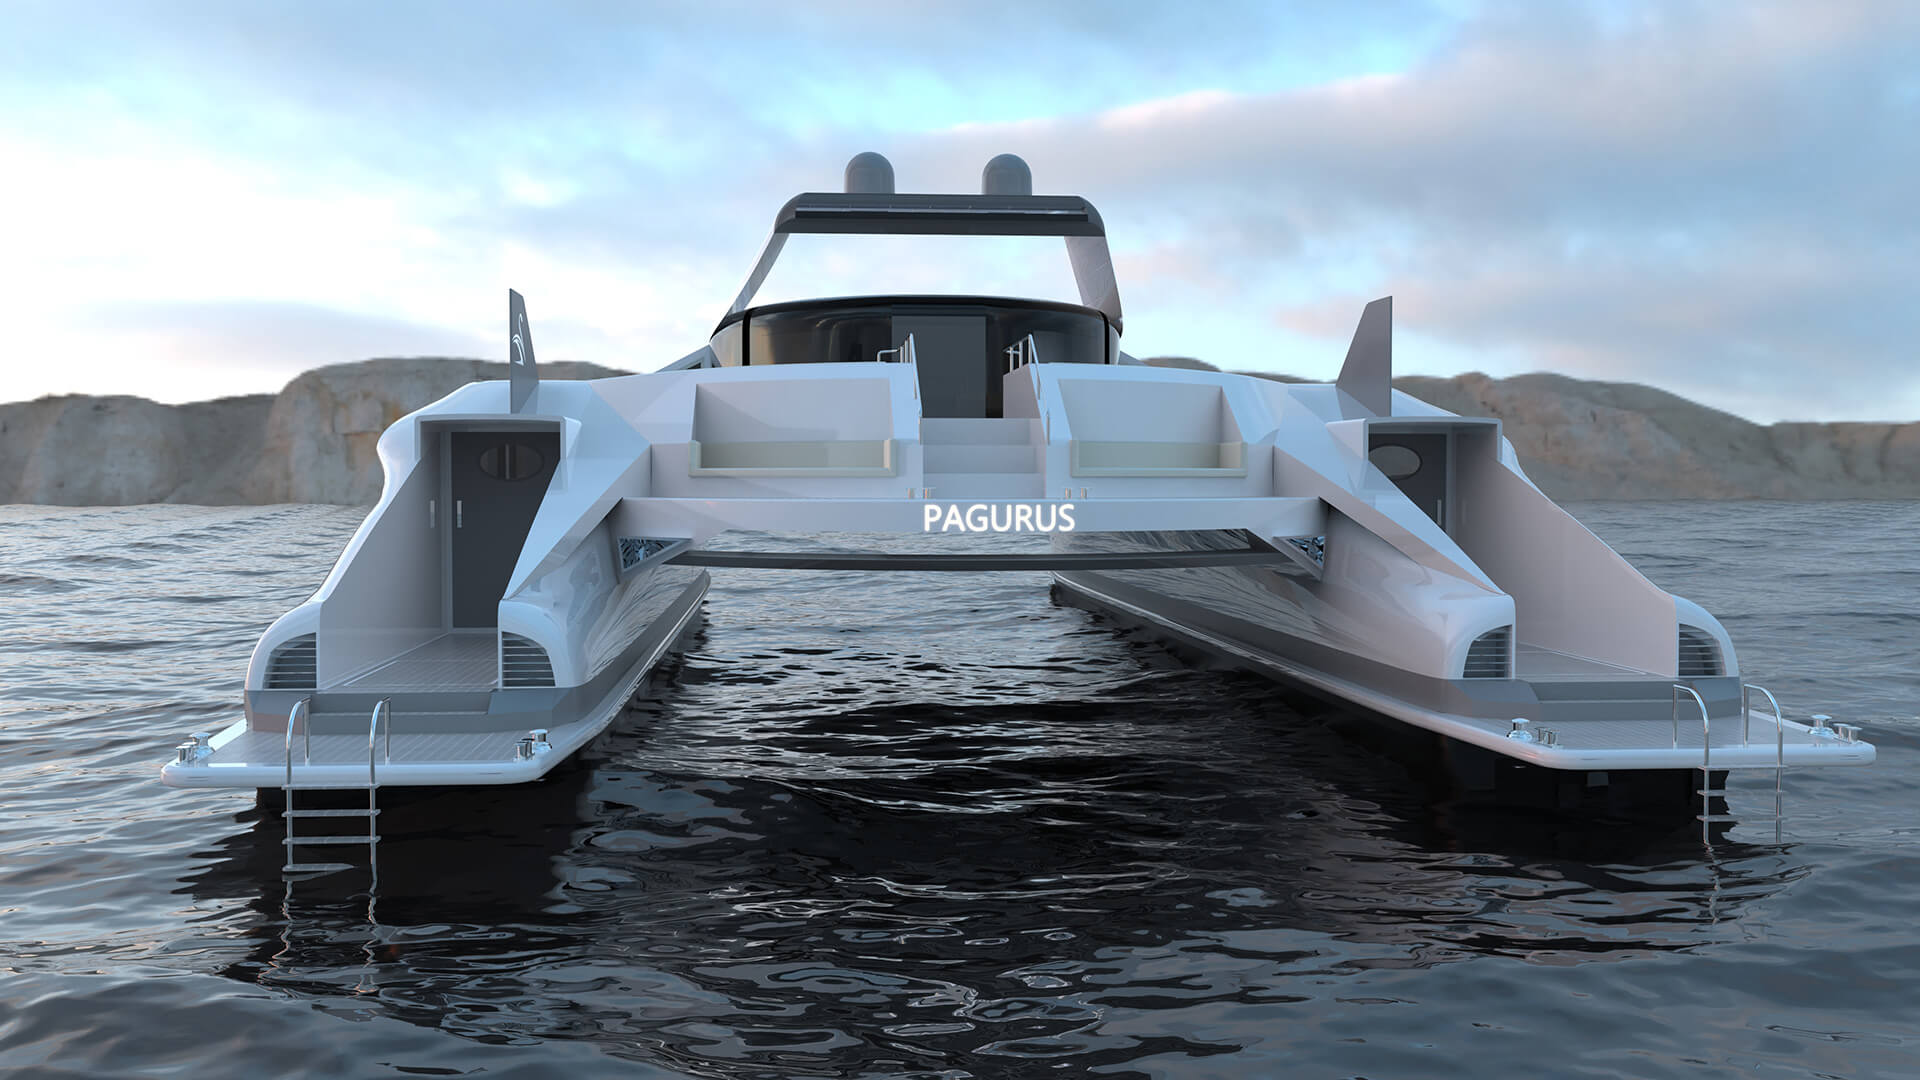 Rear view of the Pagurus: its form draws inspiration from a giant crab | Pagurus Amphibious Catamaran | Pierpaolo Lazzarini | STIRworld